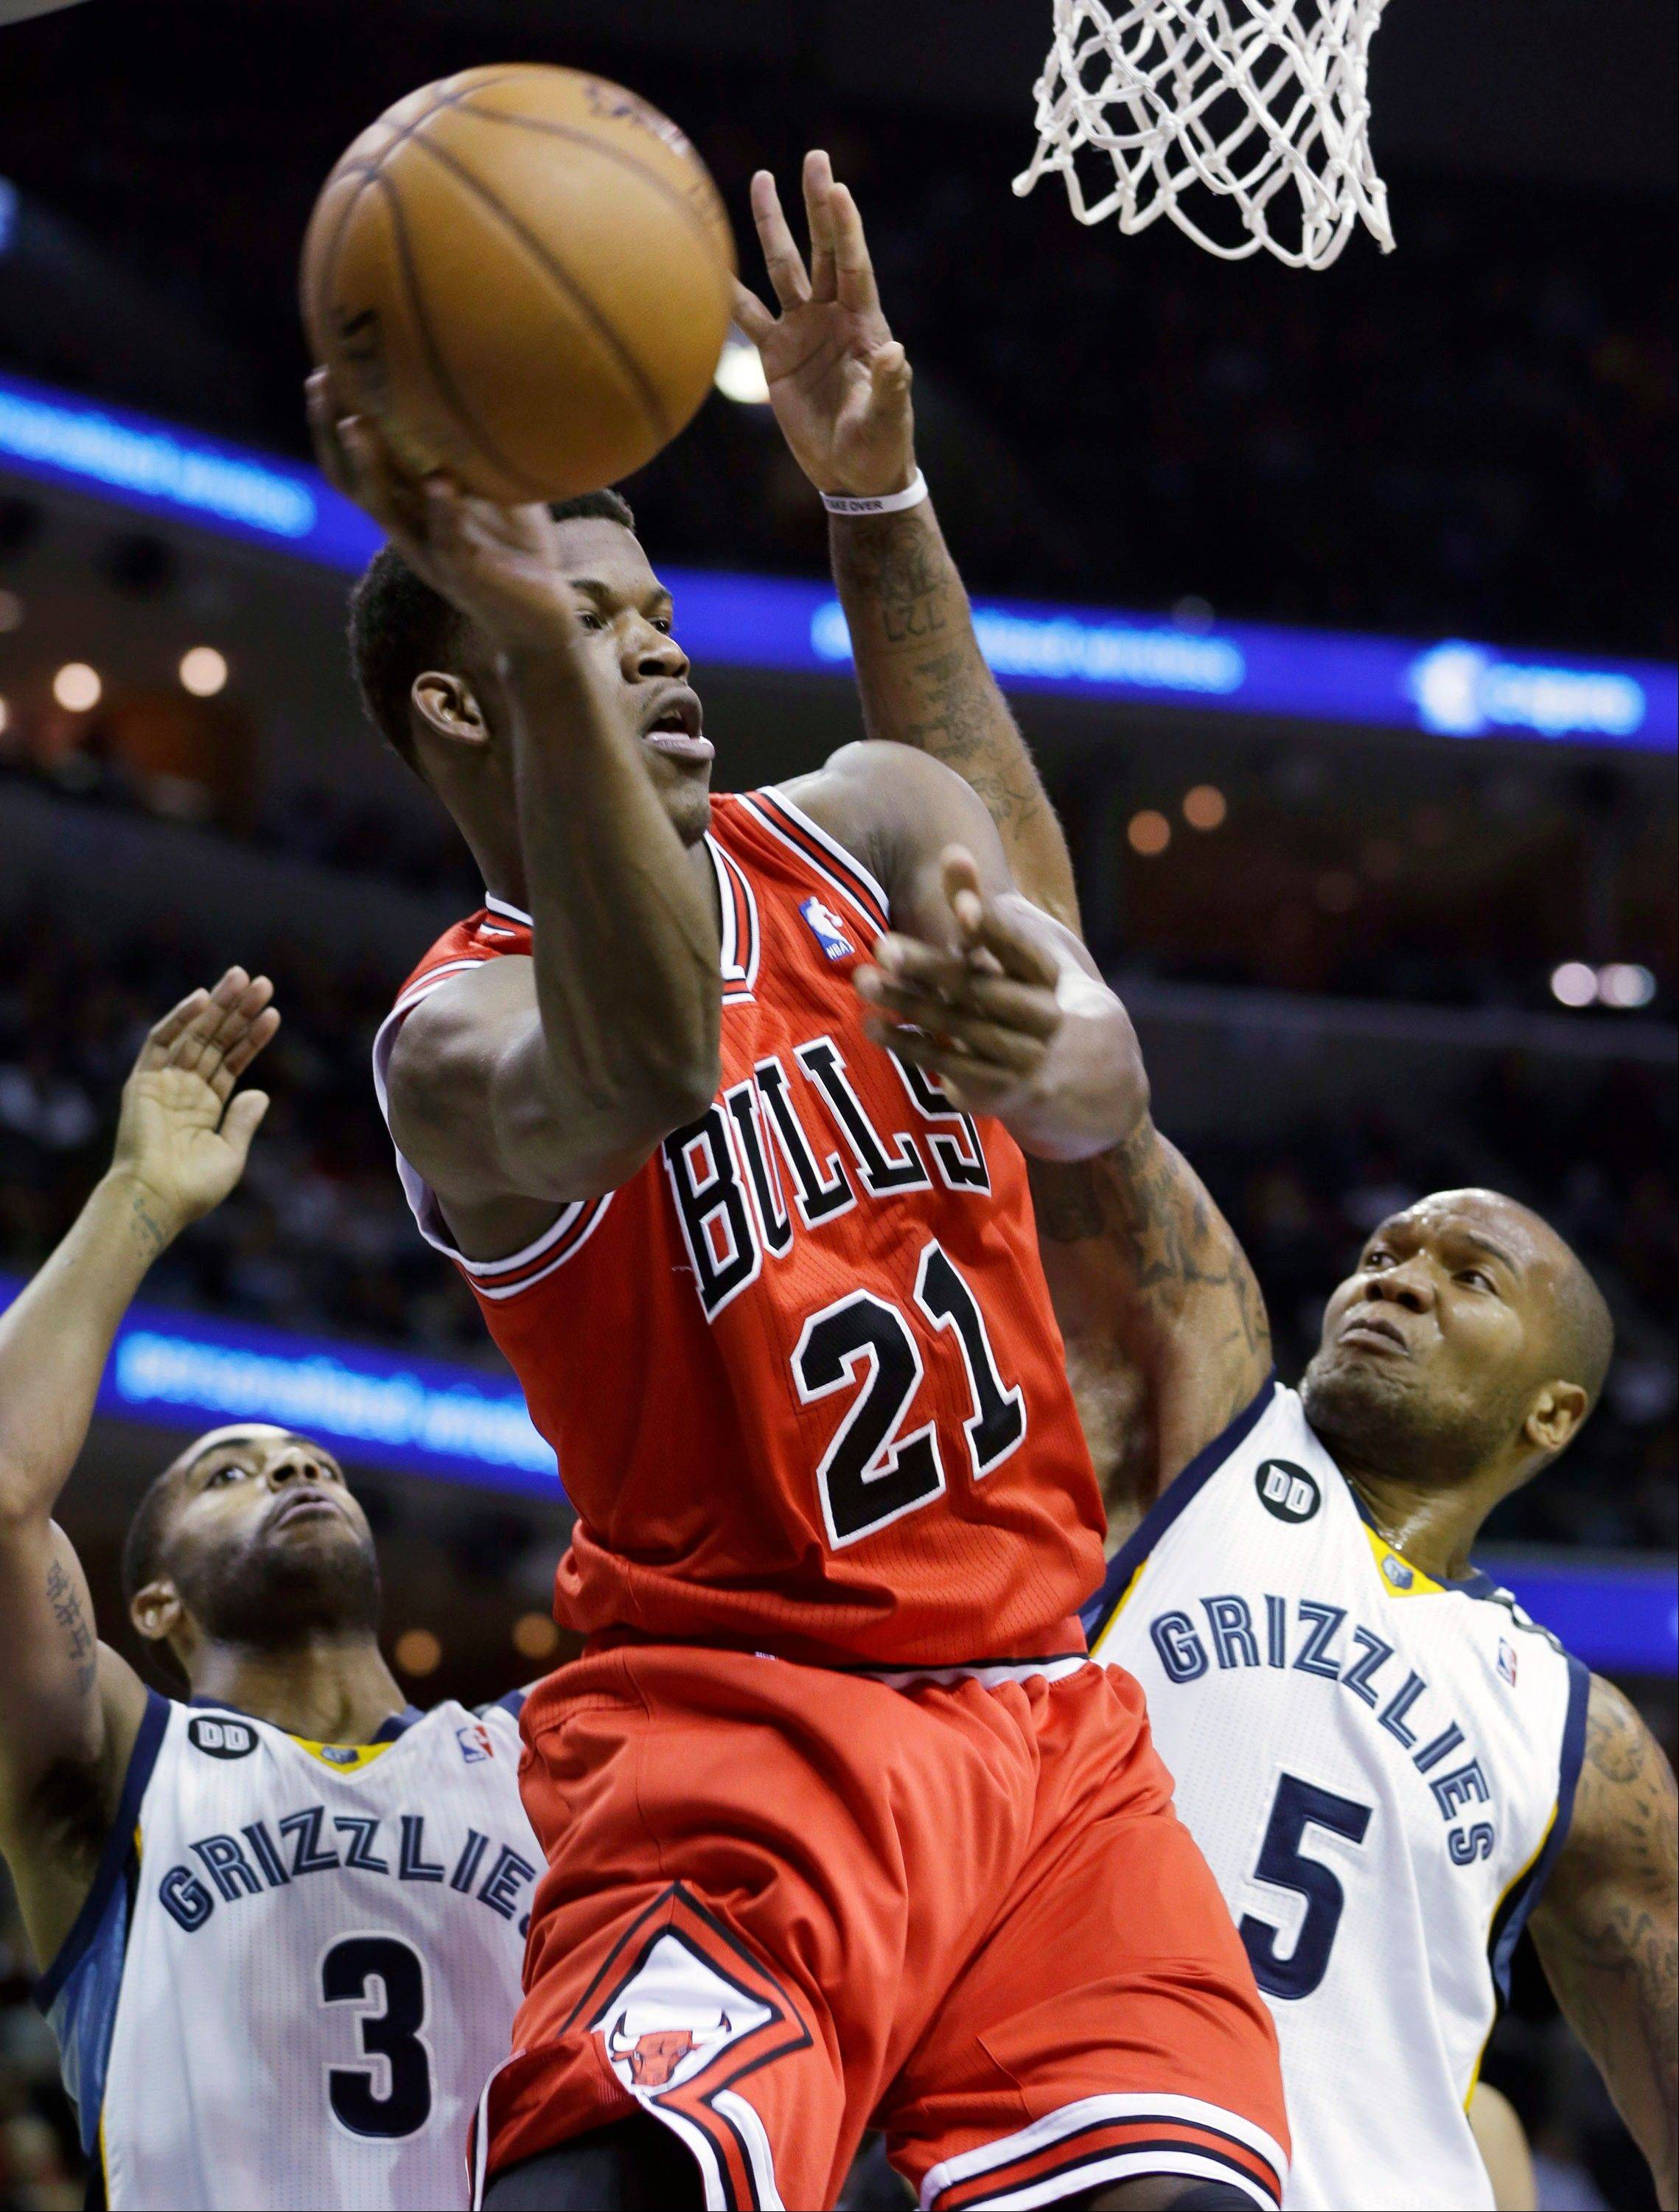 The Bulls' Jimmy Butler gets to an offensive rebound in front of the Grizzlies' Wayne Ellington (3) and Marreese Speights (5).